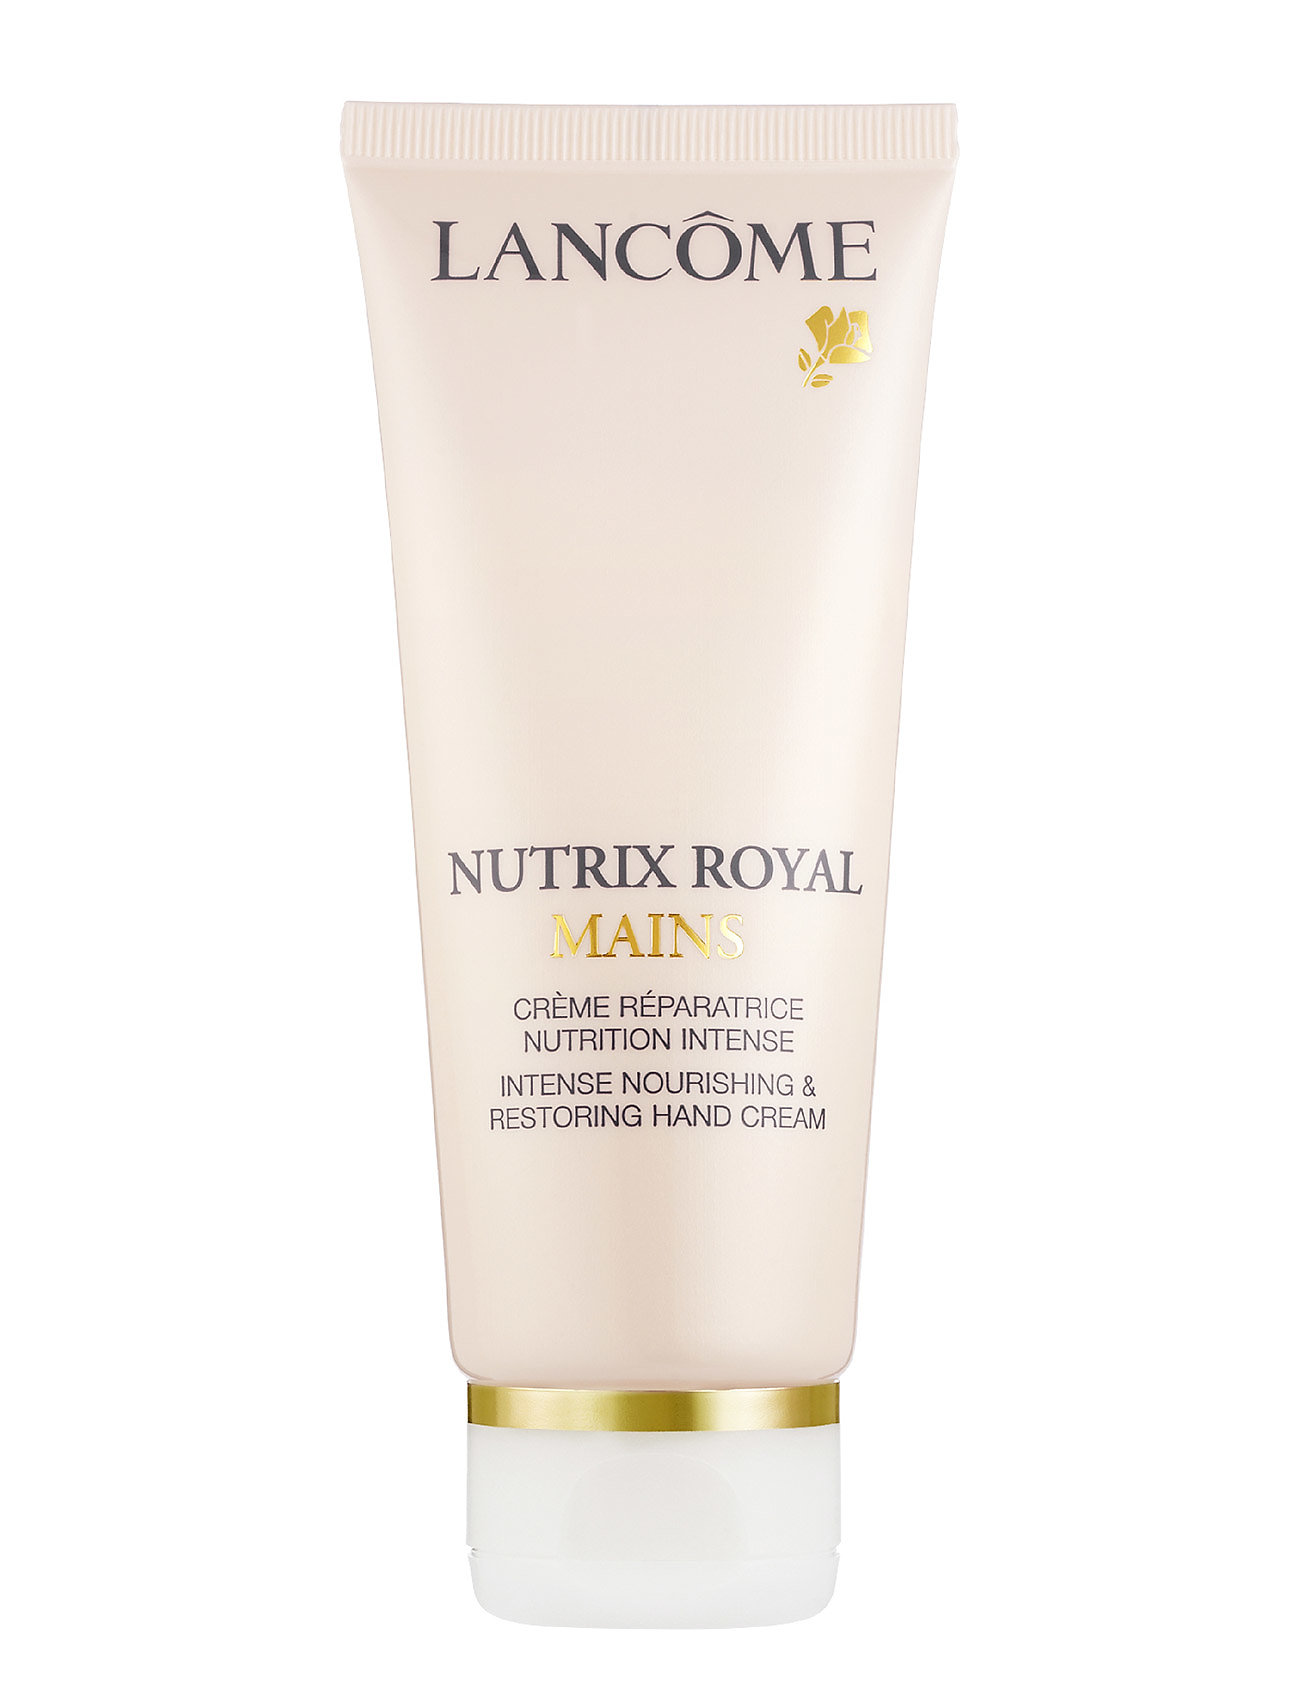 Image of Nutrix Royal Mains Hand Cream 100 Ml Beauty WOMEN Skin Care Body Hand Cream & Foot Cream Nude Lancôme (2839002551)